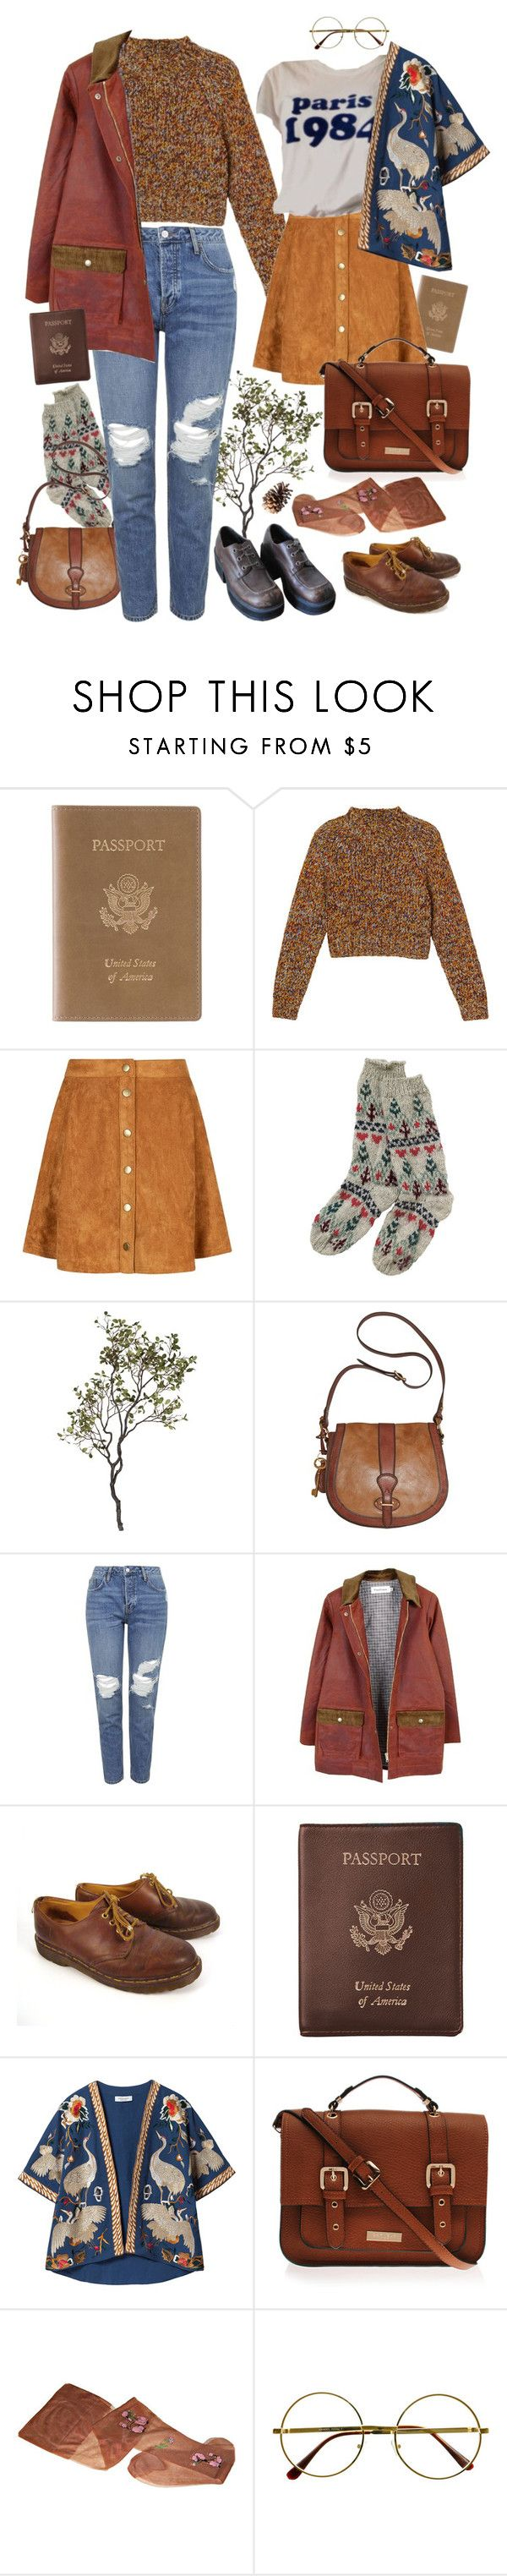 """let's go"" by paper-freckles ❤ liked on Polyvore featuring Royce Leather, Monki, Crate and Barrel, FOSSIL, Topshop, FrenchTrotters femme, Dr. Martens, Zara, Carvela Kurt Geiger and Retrò"